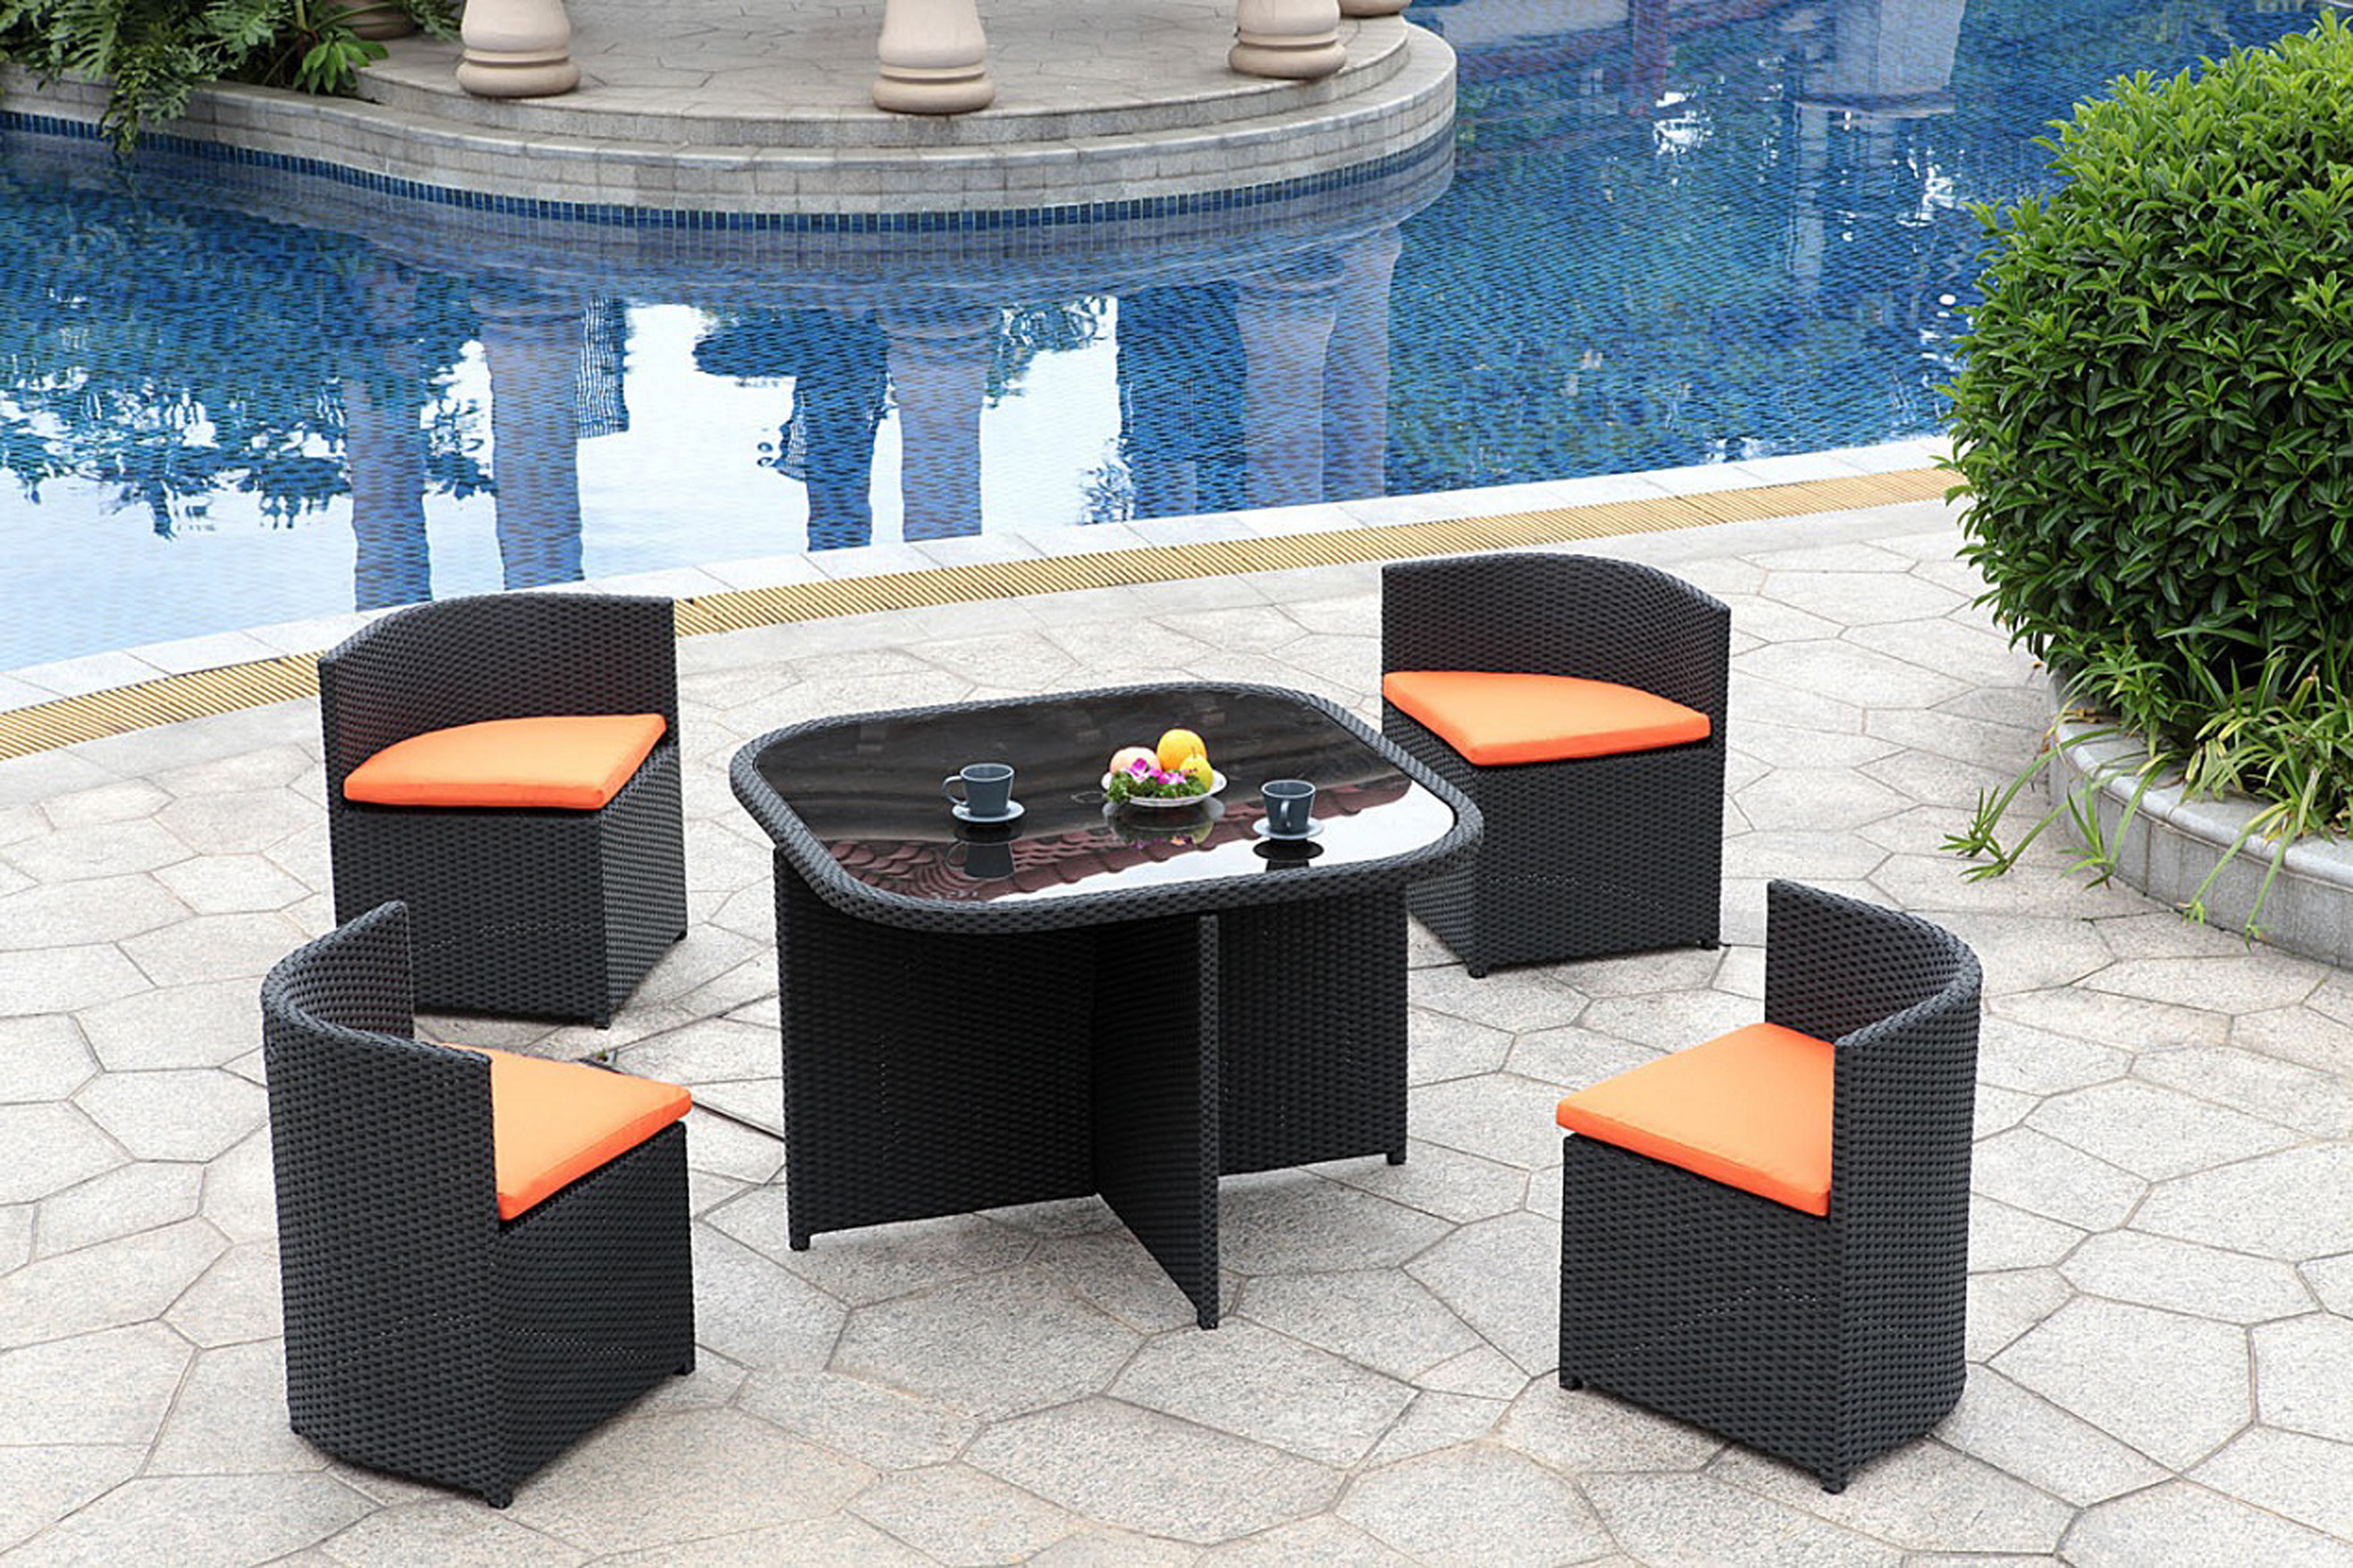 Amazing Modern Outdoor Furniture Design Idea With Glass Top Dining Table With Black Base And Black Chairs With Orange Seat Cushions Affordable Modern Outdoor Furniture Design Ideas (Image 8 of 28)